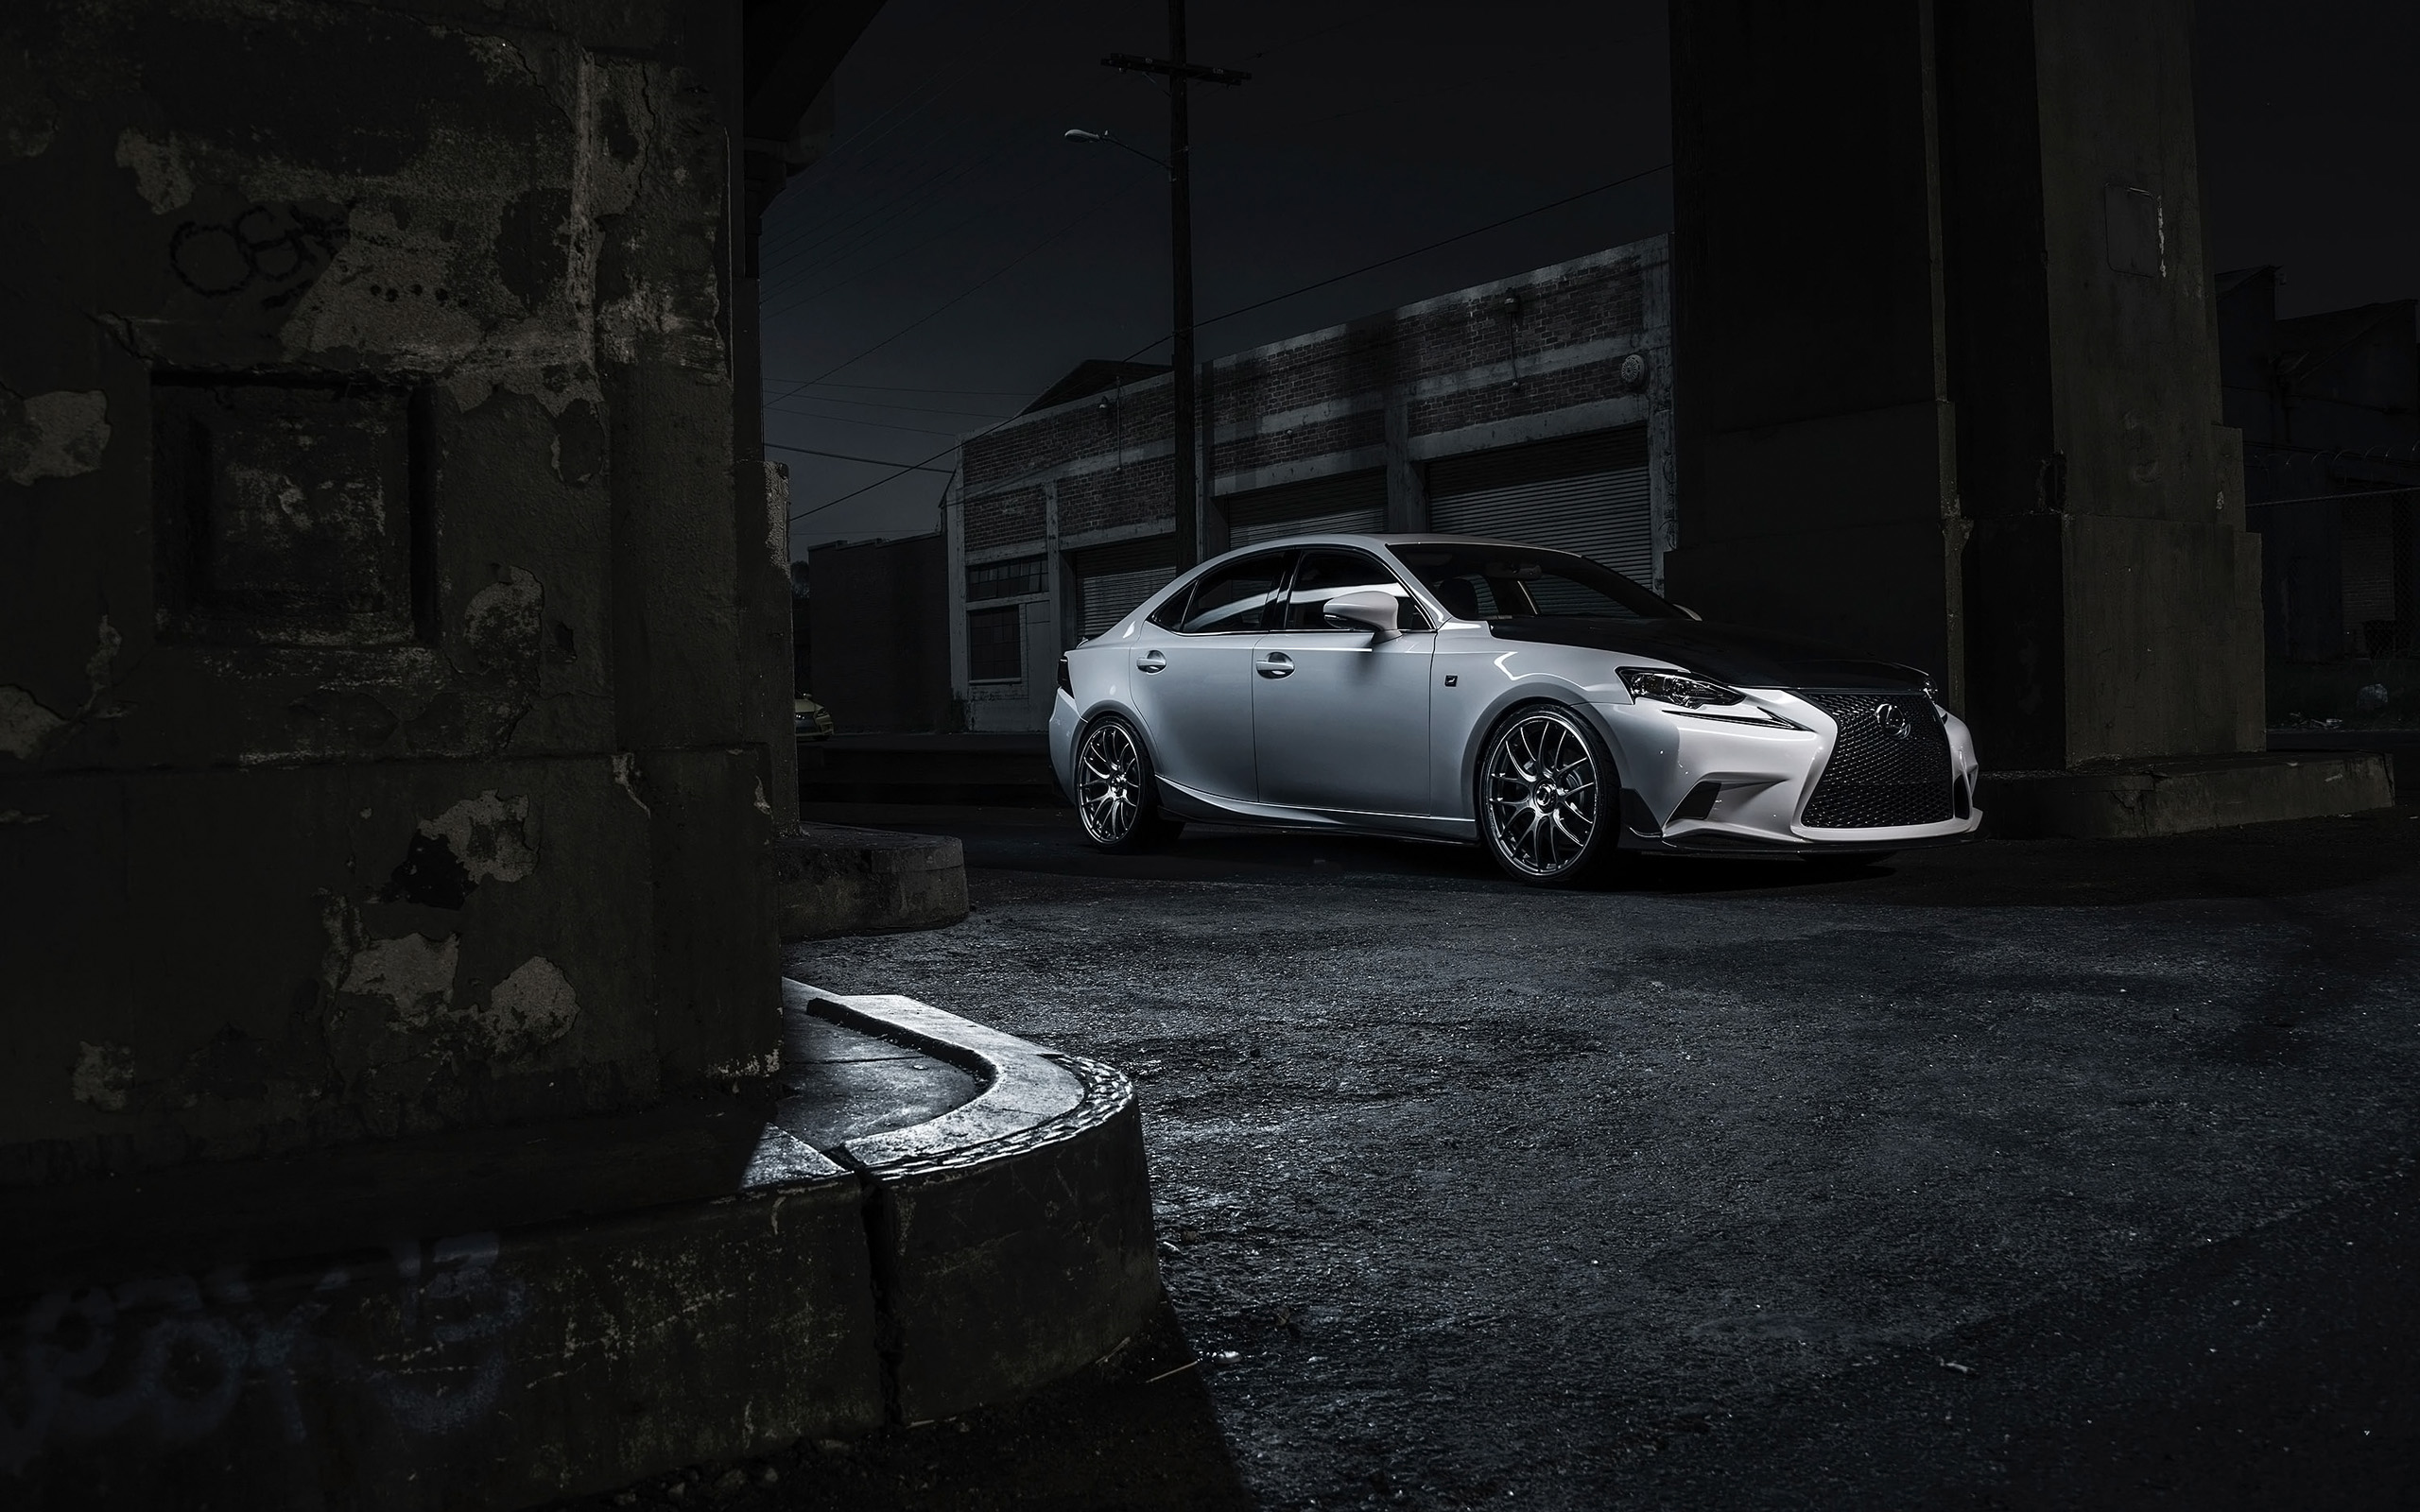 2014 Lexus IS 350 F Sport By Seibon